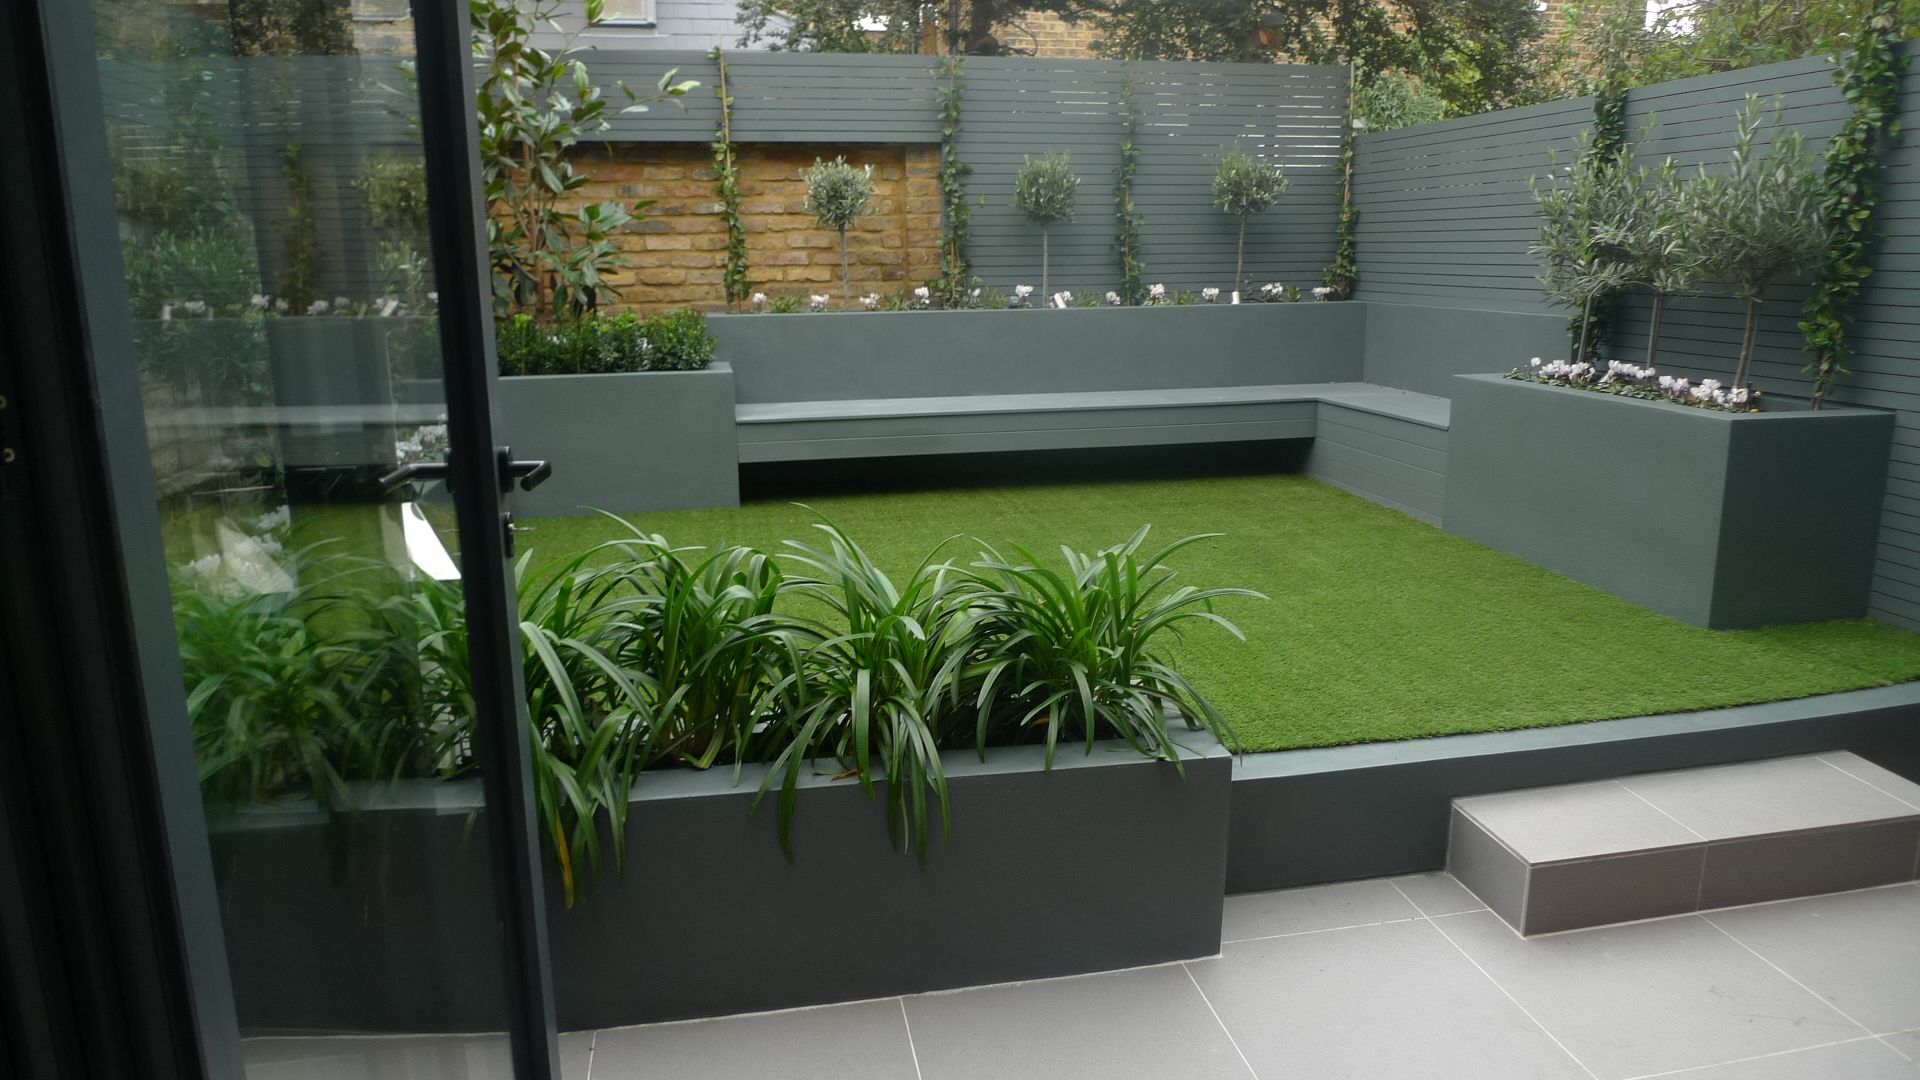 Modern small low maintenance garden fake grass grey raised beds contemporary planting battersea - Garden ideas london ...